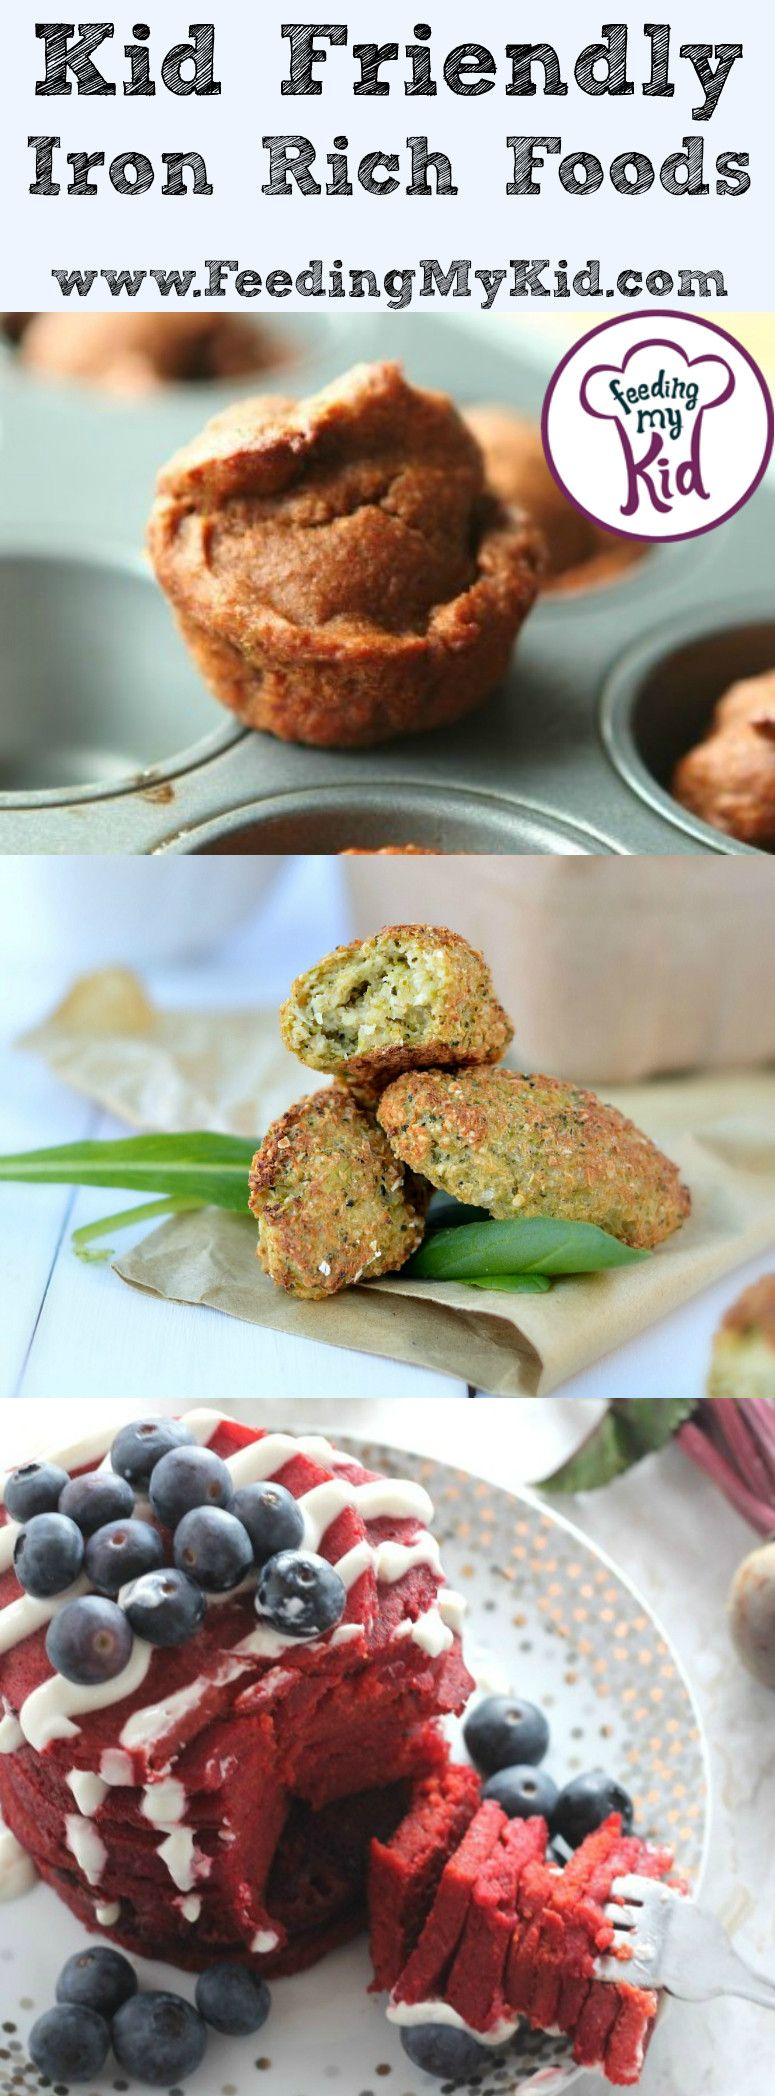 Kid Friendly Iron Rich Foods Iron rich foods, Foods with